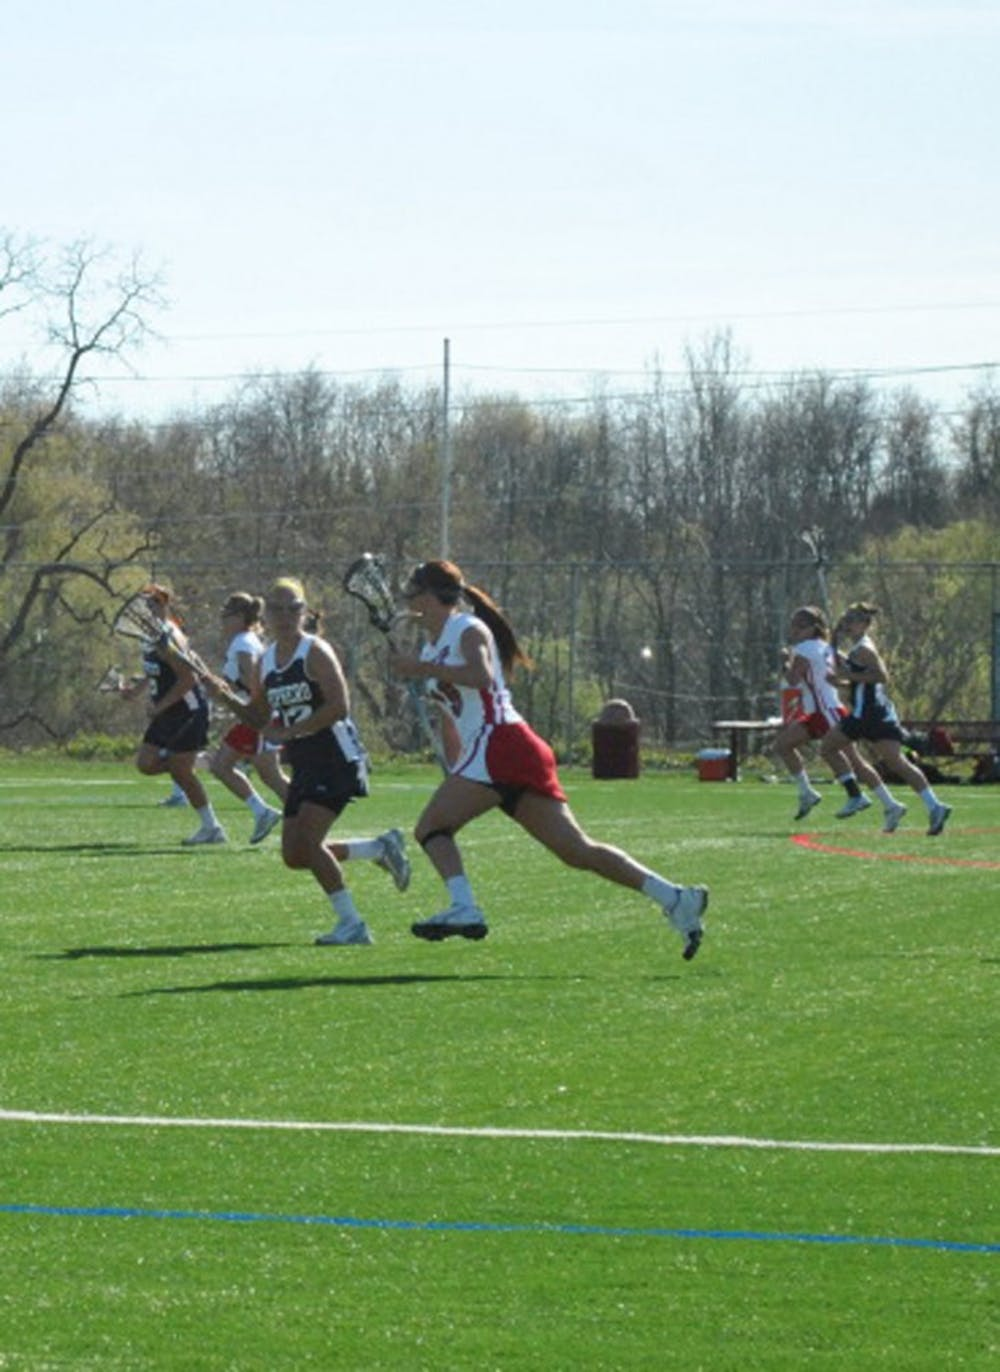 SU ekes out victory over Edinboro with strong performance by Kennedy